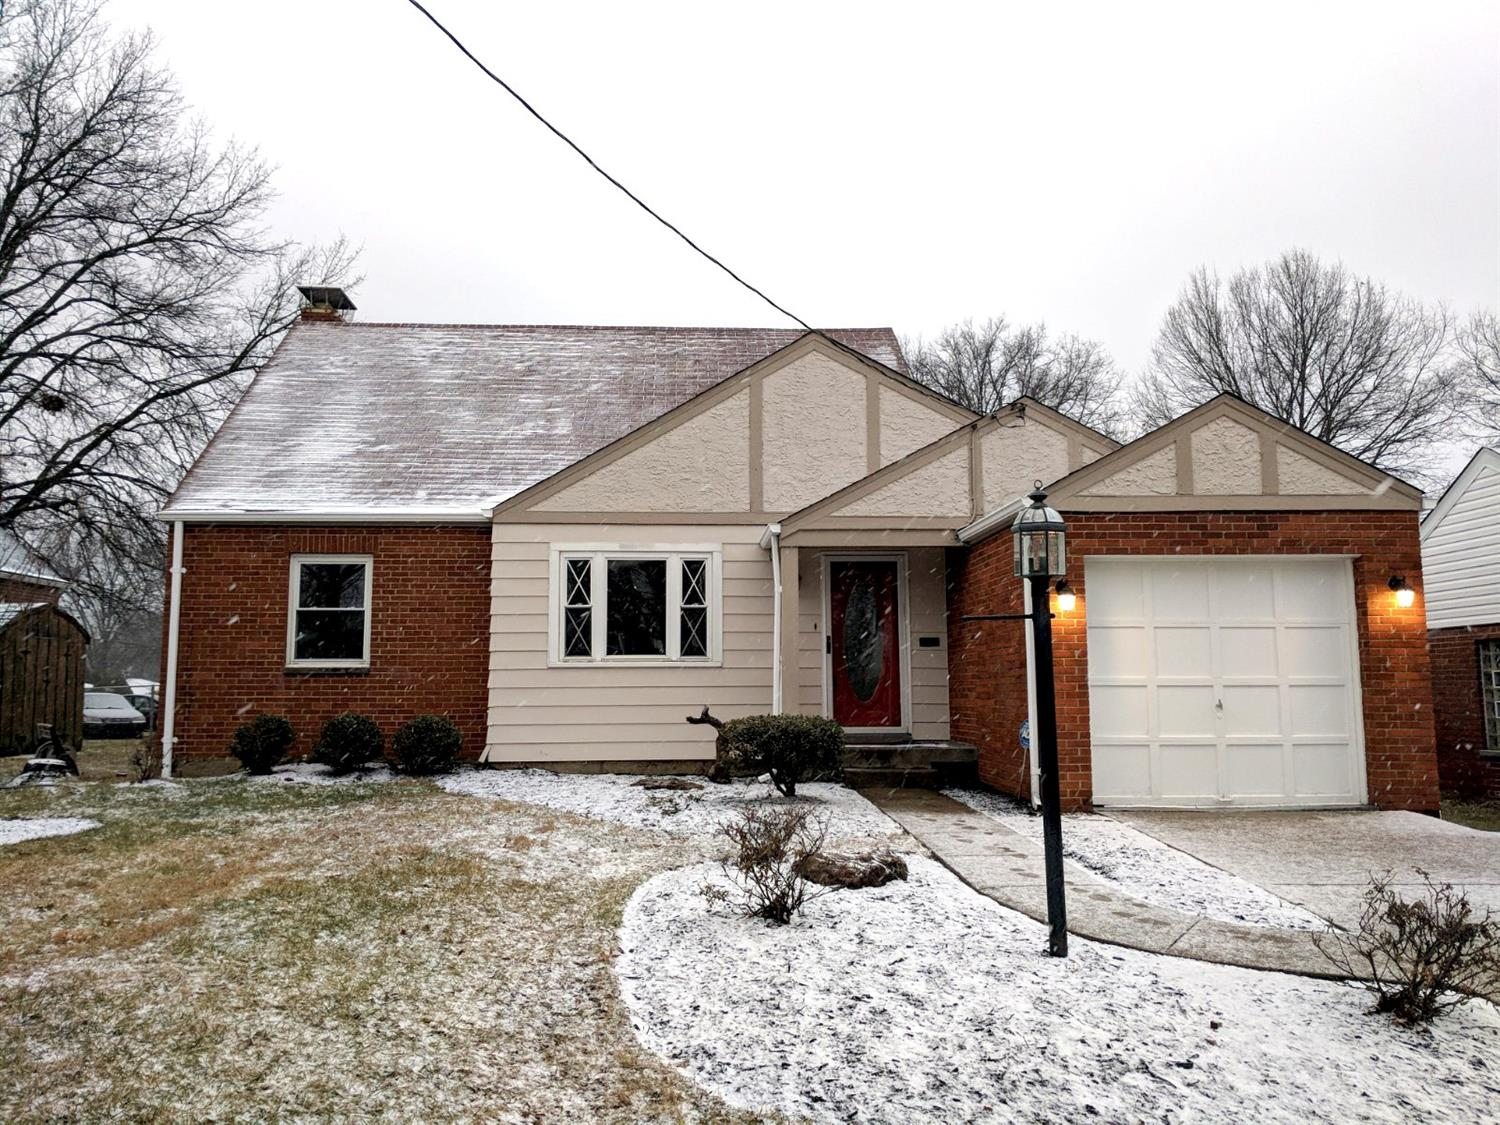 8407 Wicklow Ave Dillonvale, OH